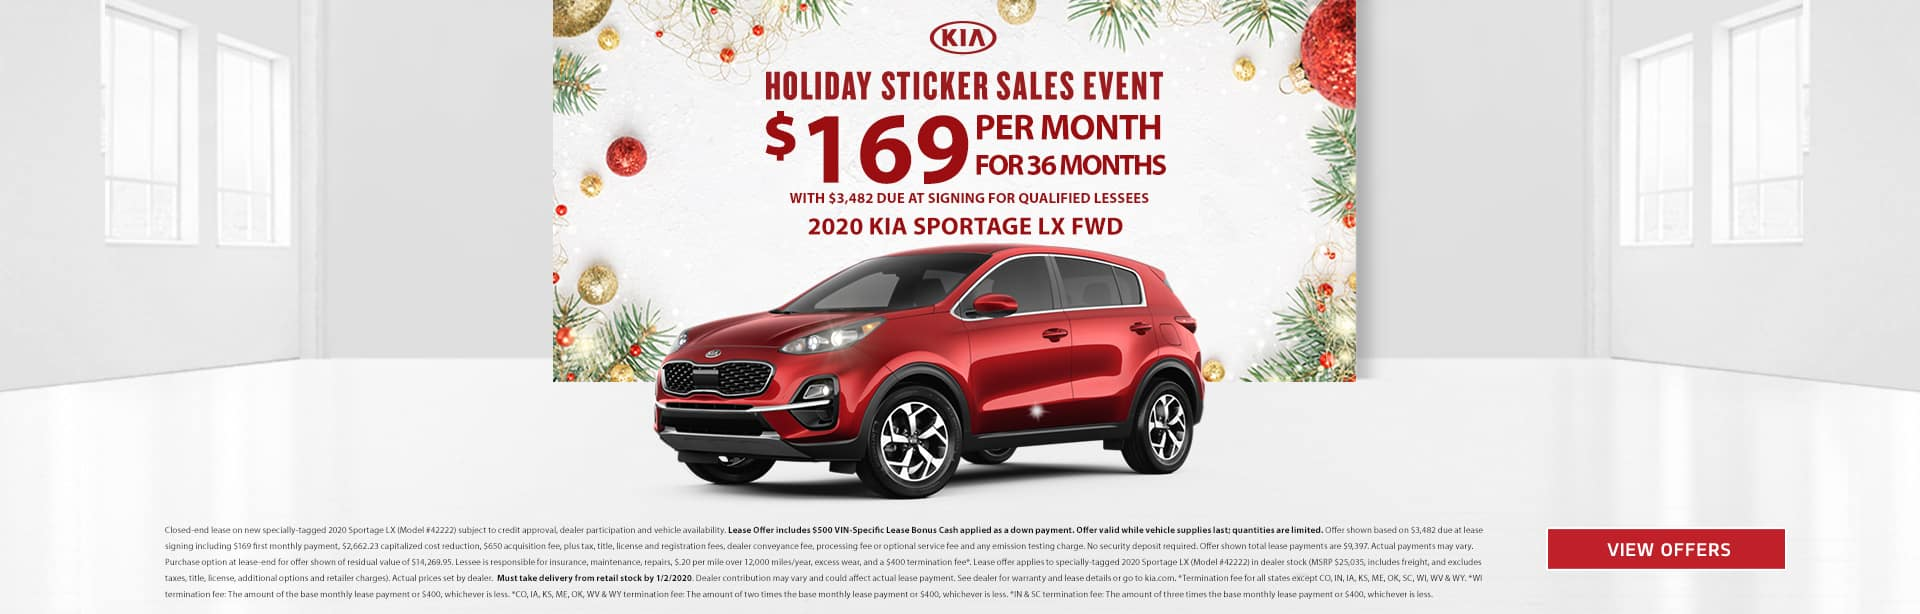 Holiday Sticker Sportage Lease 201924